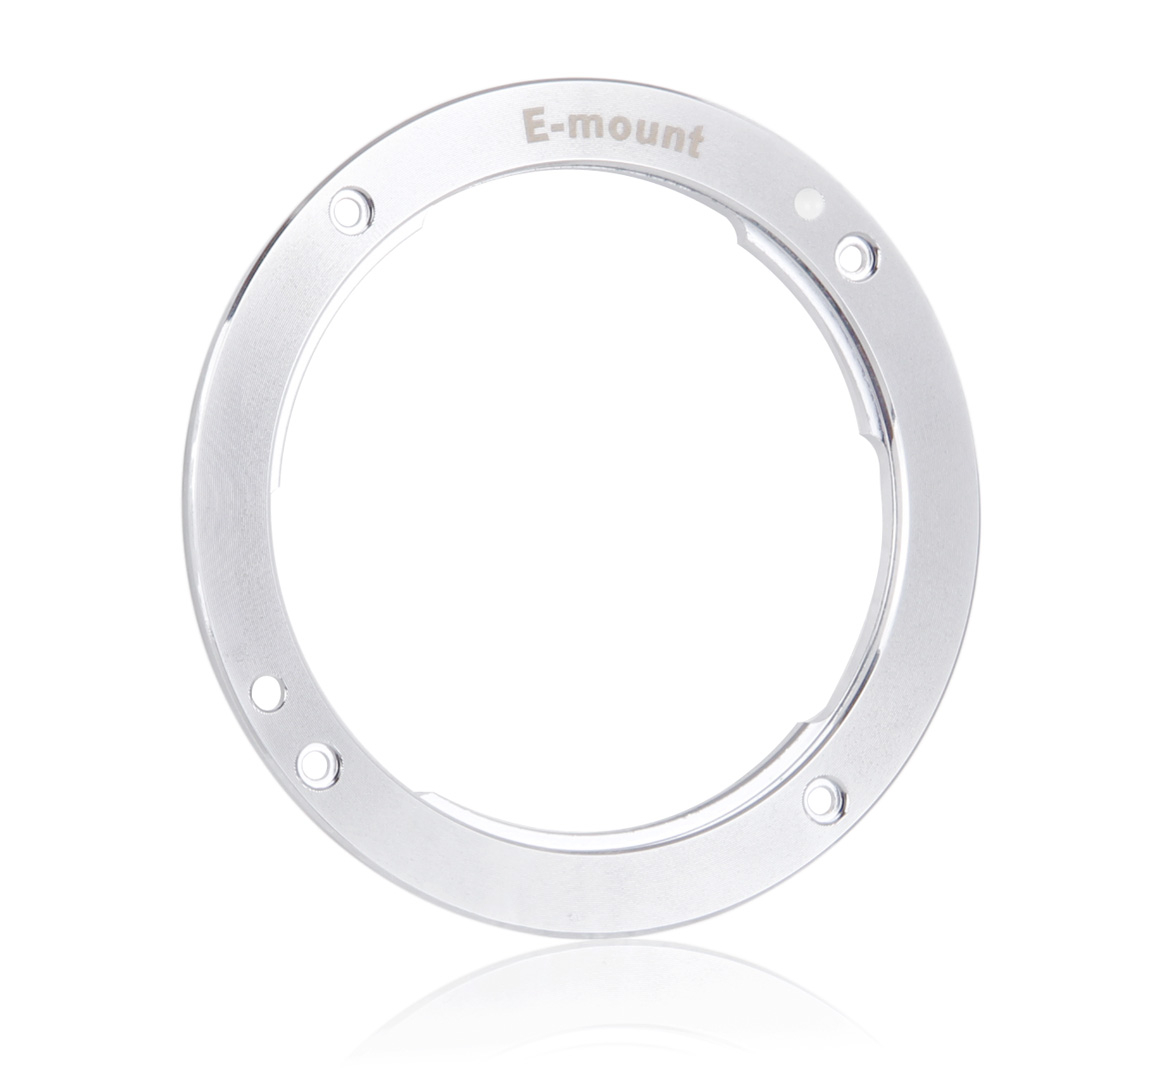 Tough E-Mount Replacement Mount for Sony NEX & E-Mount